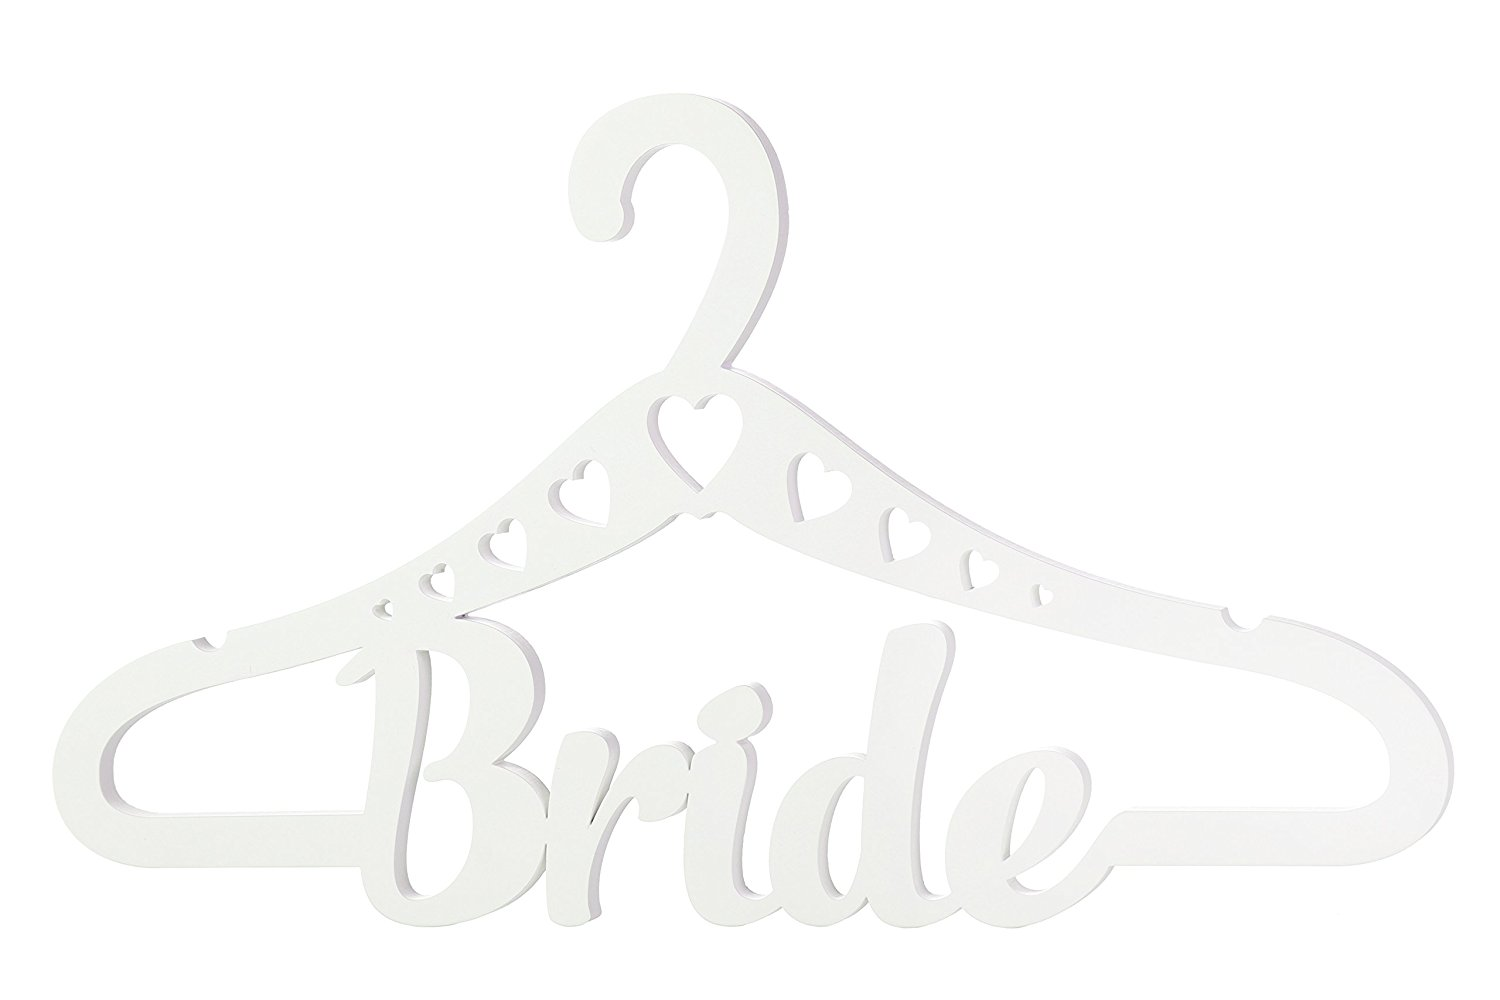 White Wooden Wedding Dress Hanger BRIDE with Hearts for Wedding Day Ceremony, Bridal Shower, Photo Sets